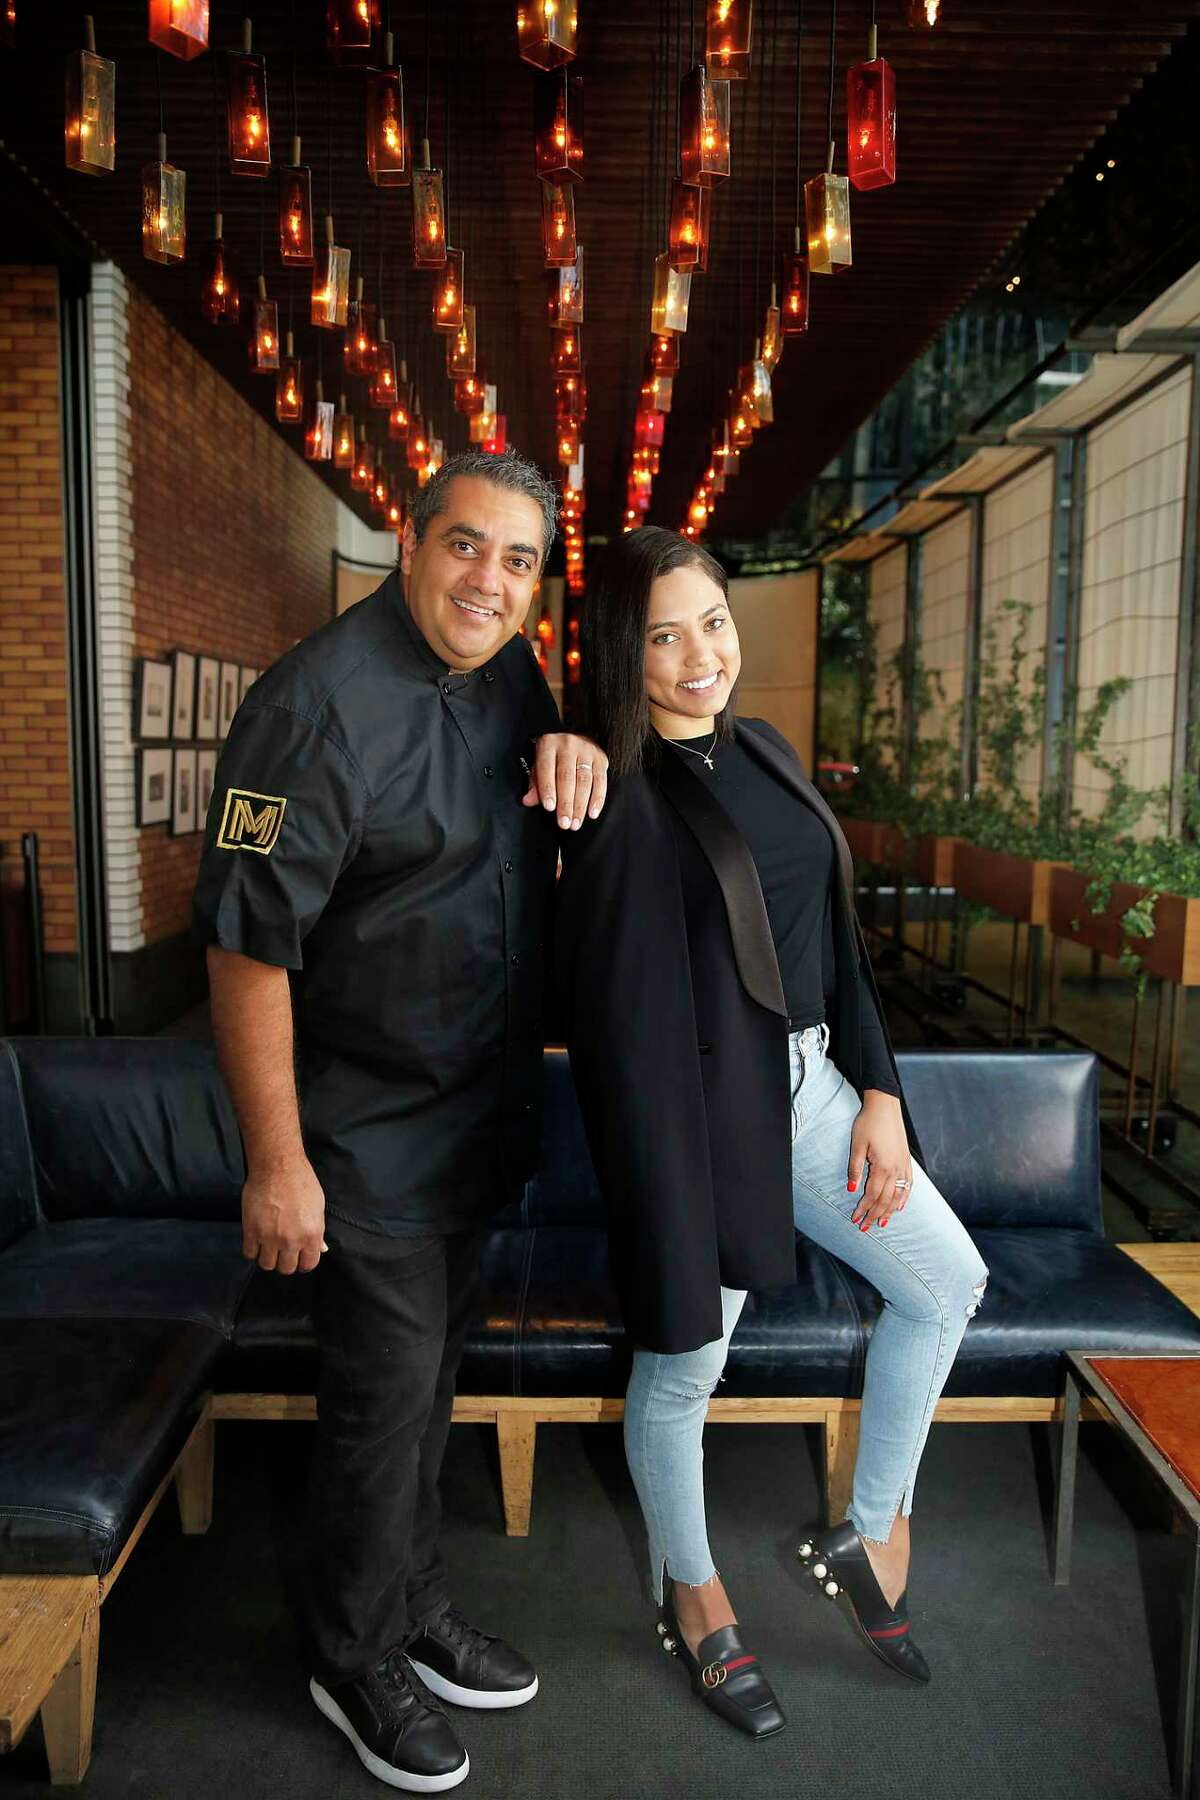 Celebrity chef Michael Mina and Ayesha Curry have partnered on new restaurant called International Smoke which will open in Houston in early 2018.